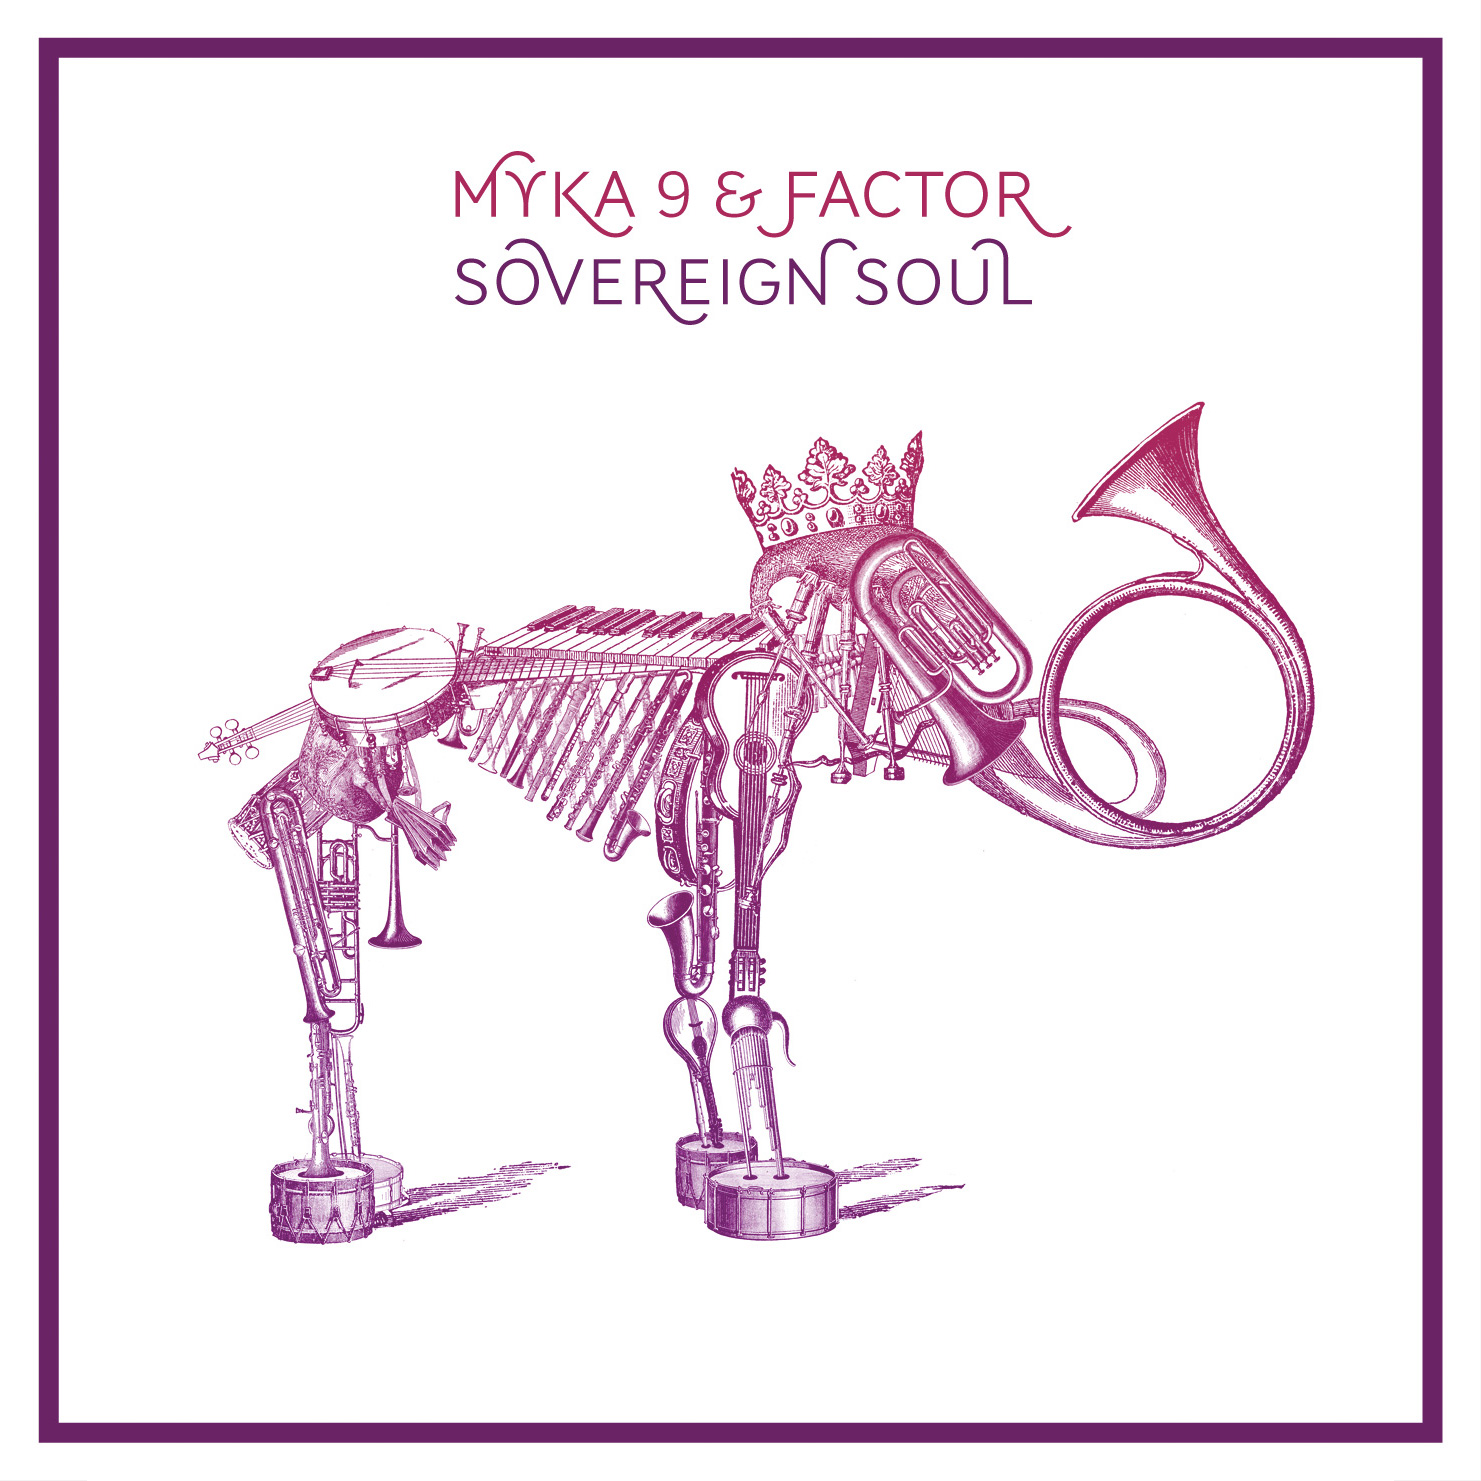 Myka-9-and-Factor-Sovereign-Soul